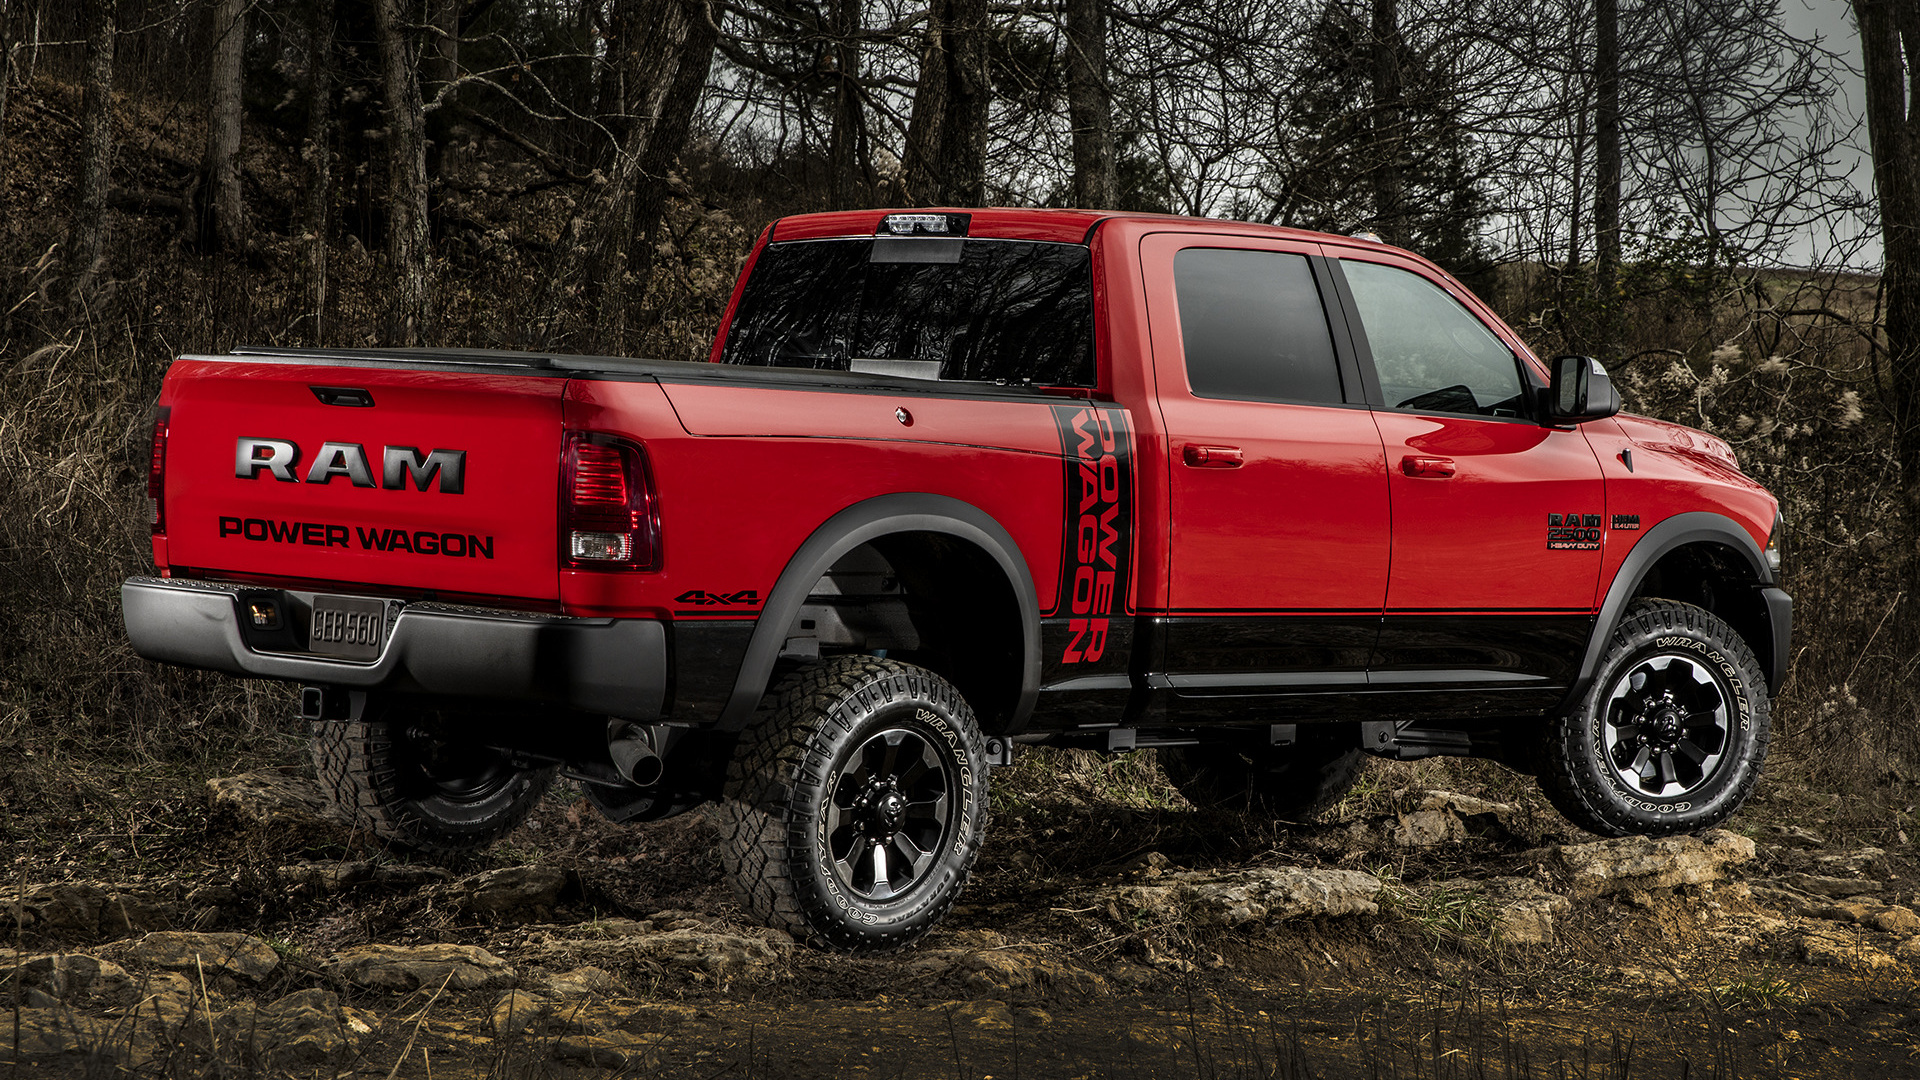 Ram 2500 Power Wagon Crew Cab (2017) Wallpapers and HD Images